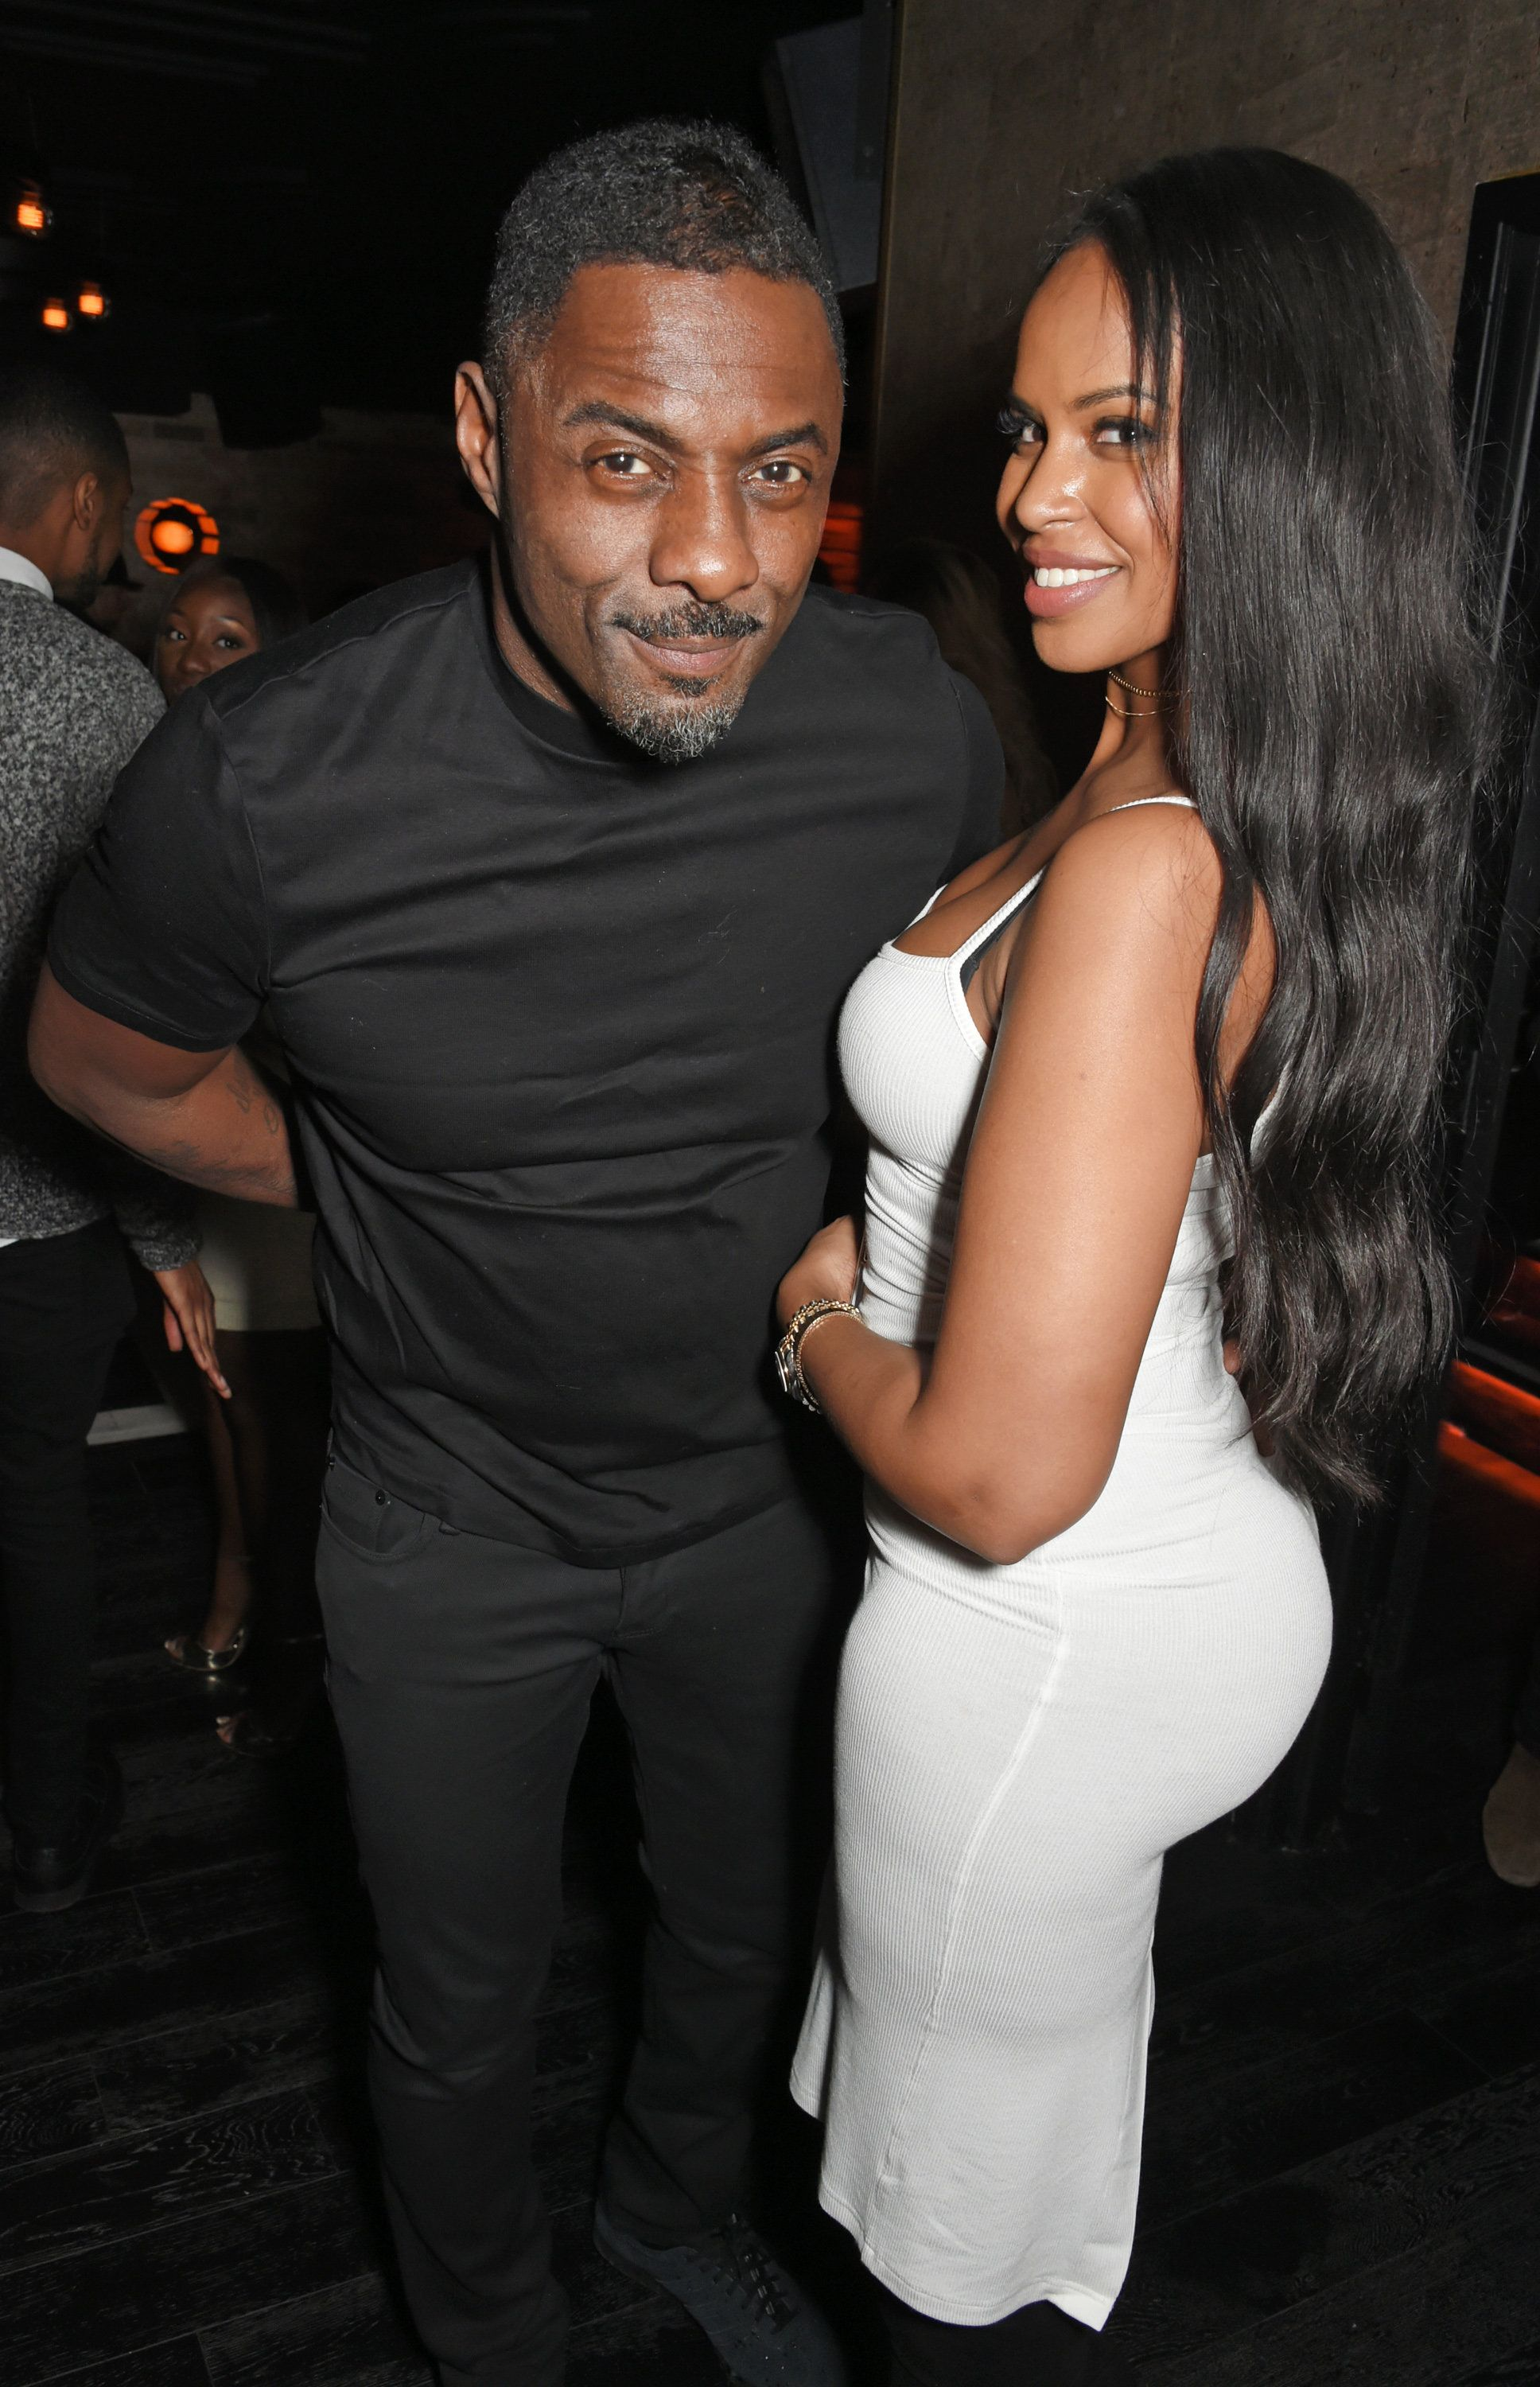 Idris Elba and Sabrina Dhowre at the actor's Christmas Party in December 2017.